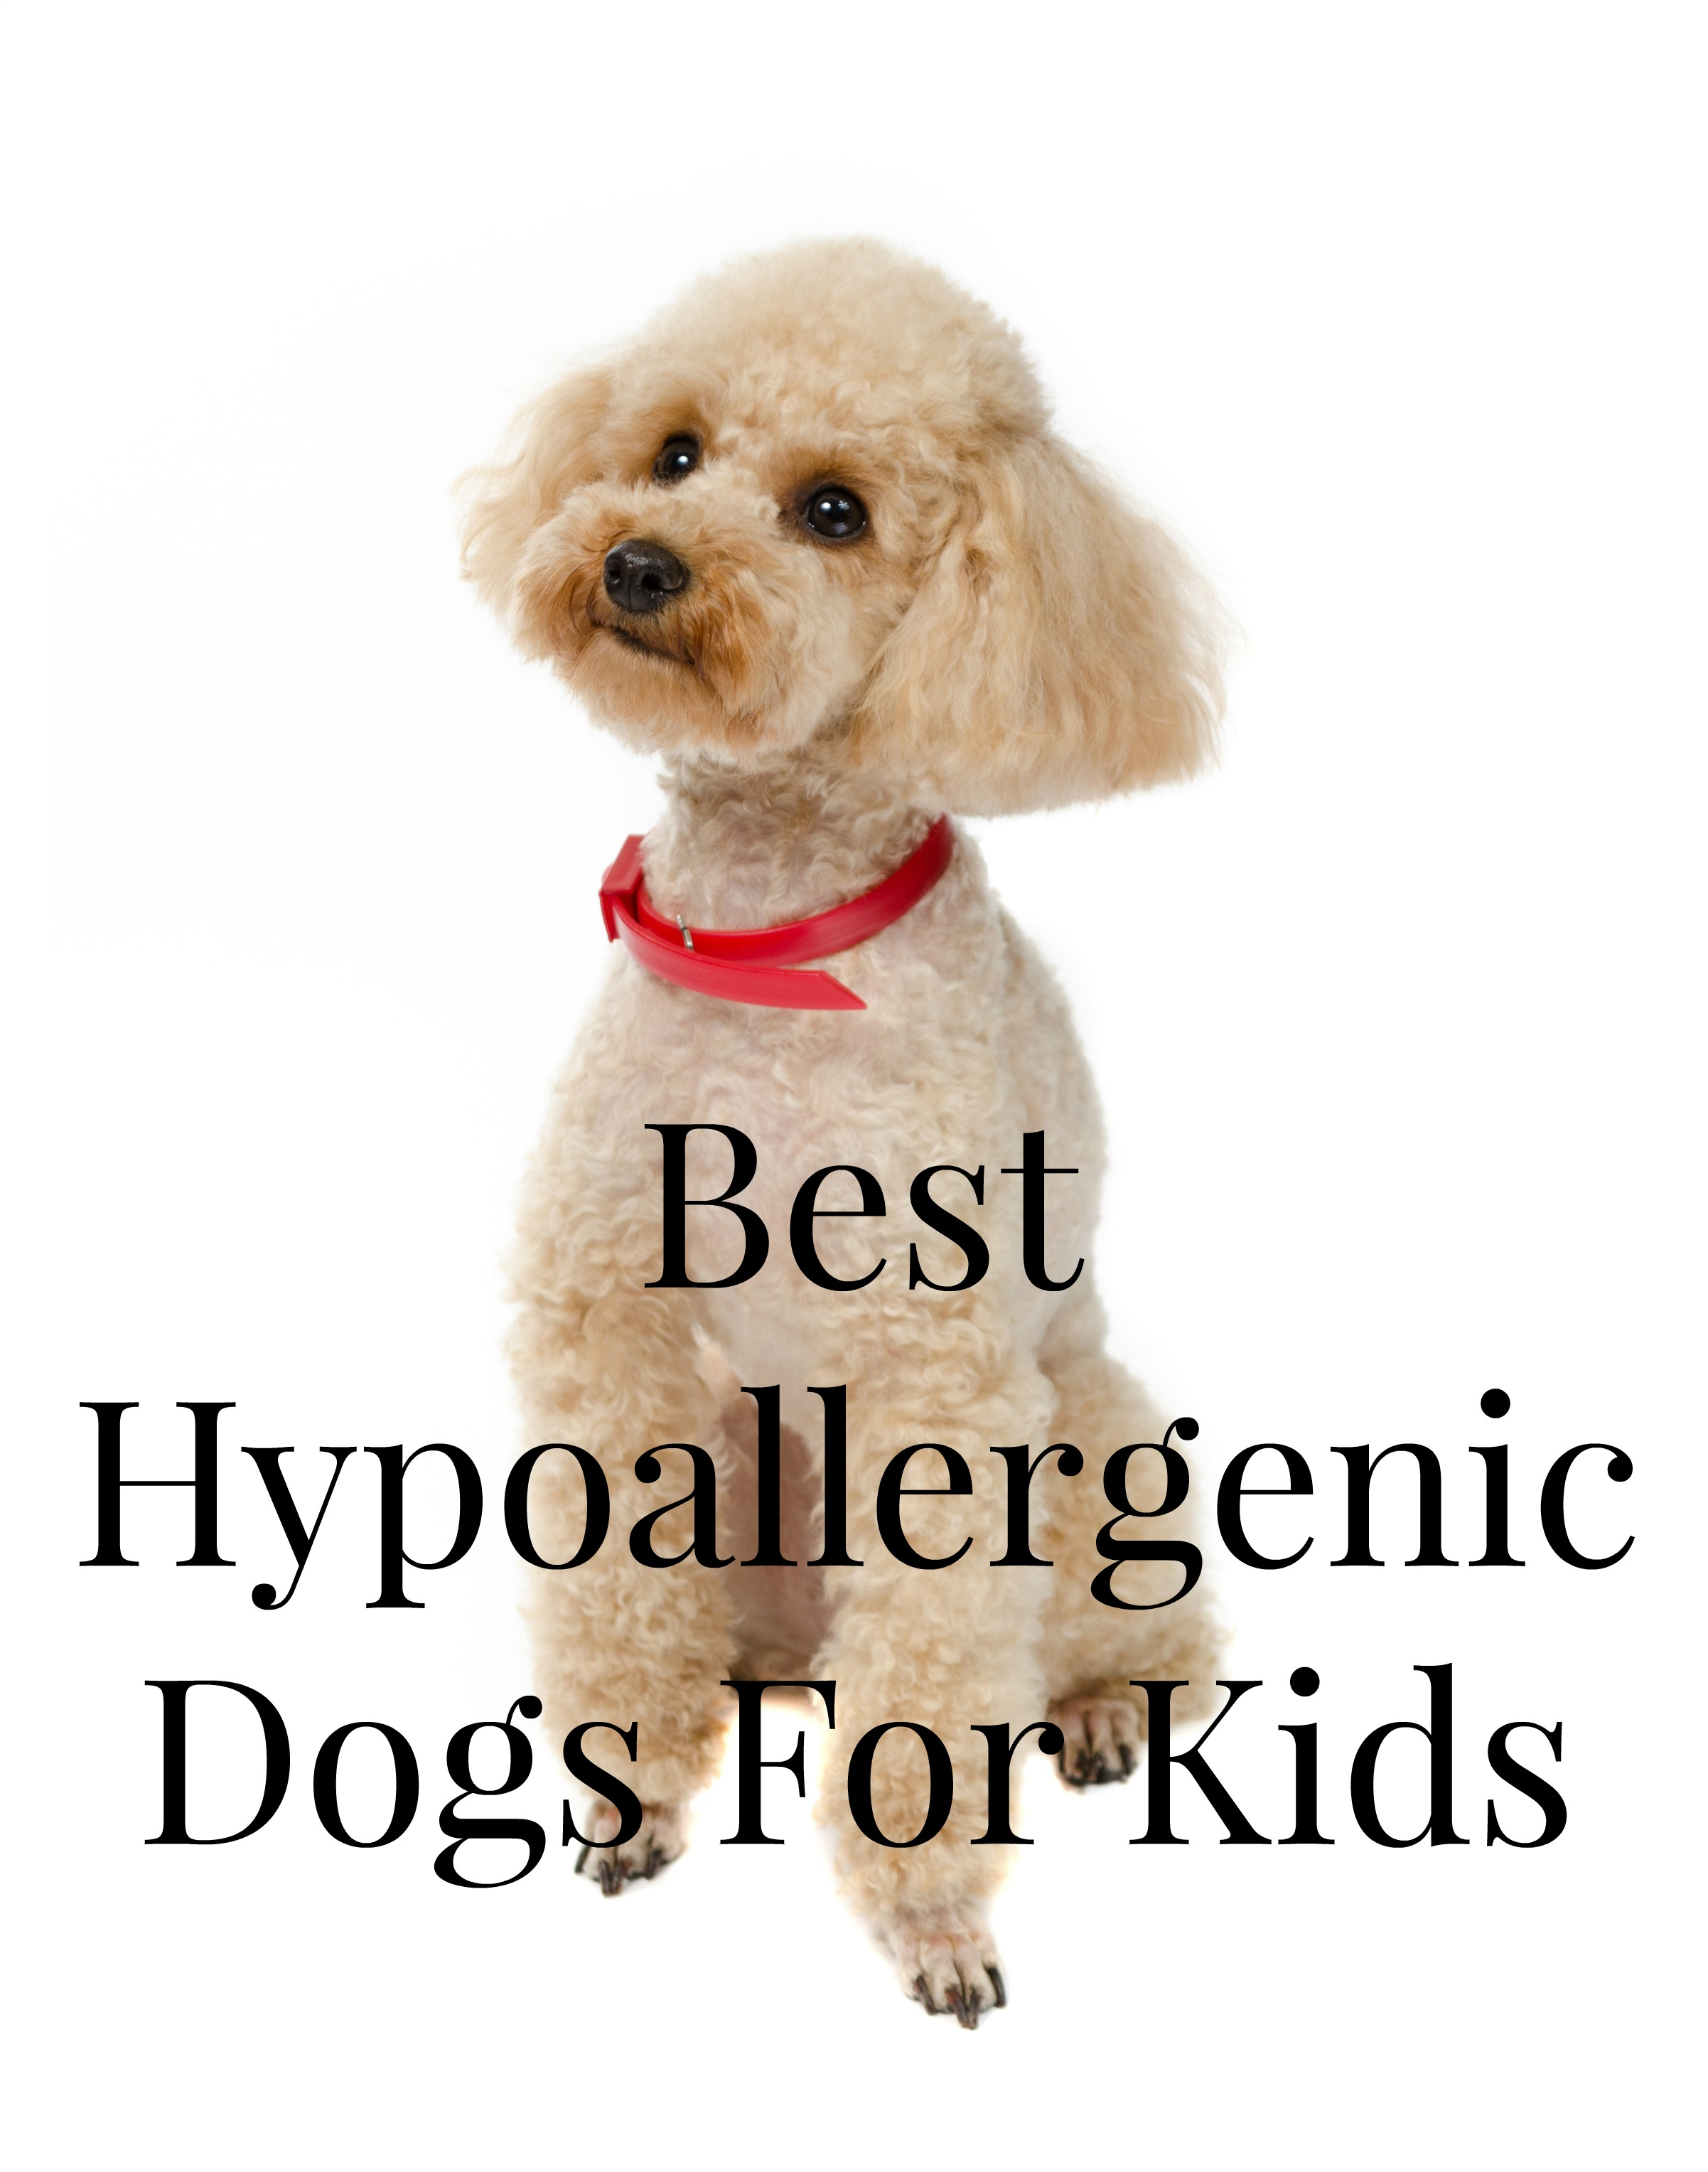 What should I consider when looking for kid-friendly dogs?